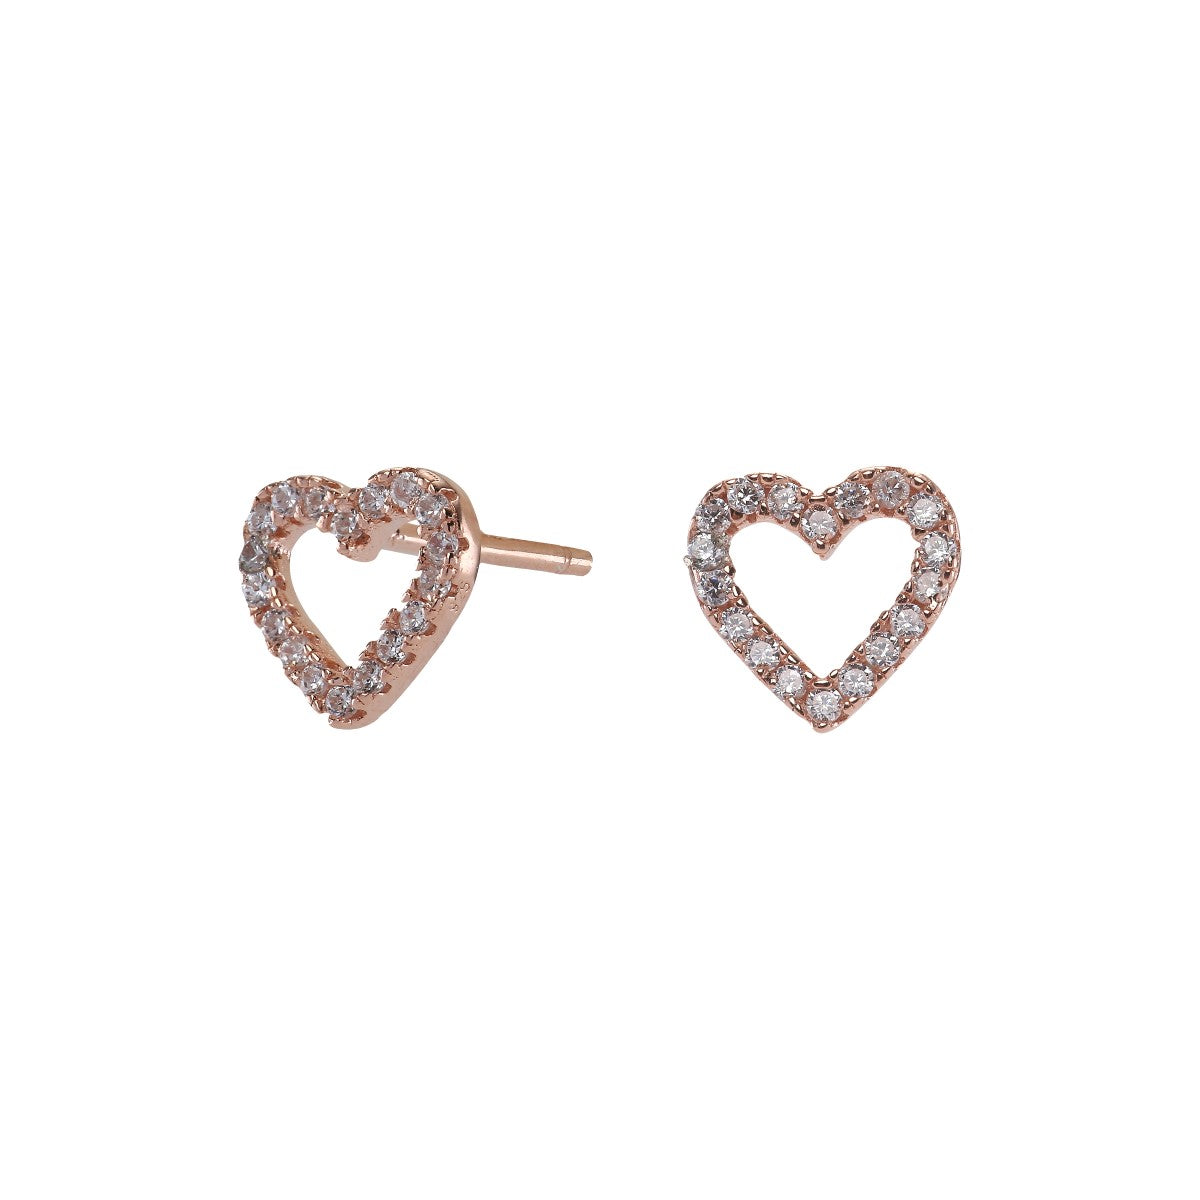 Rosegold-plated silver earrings AIDA heart cz. 6mm